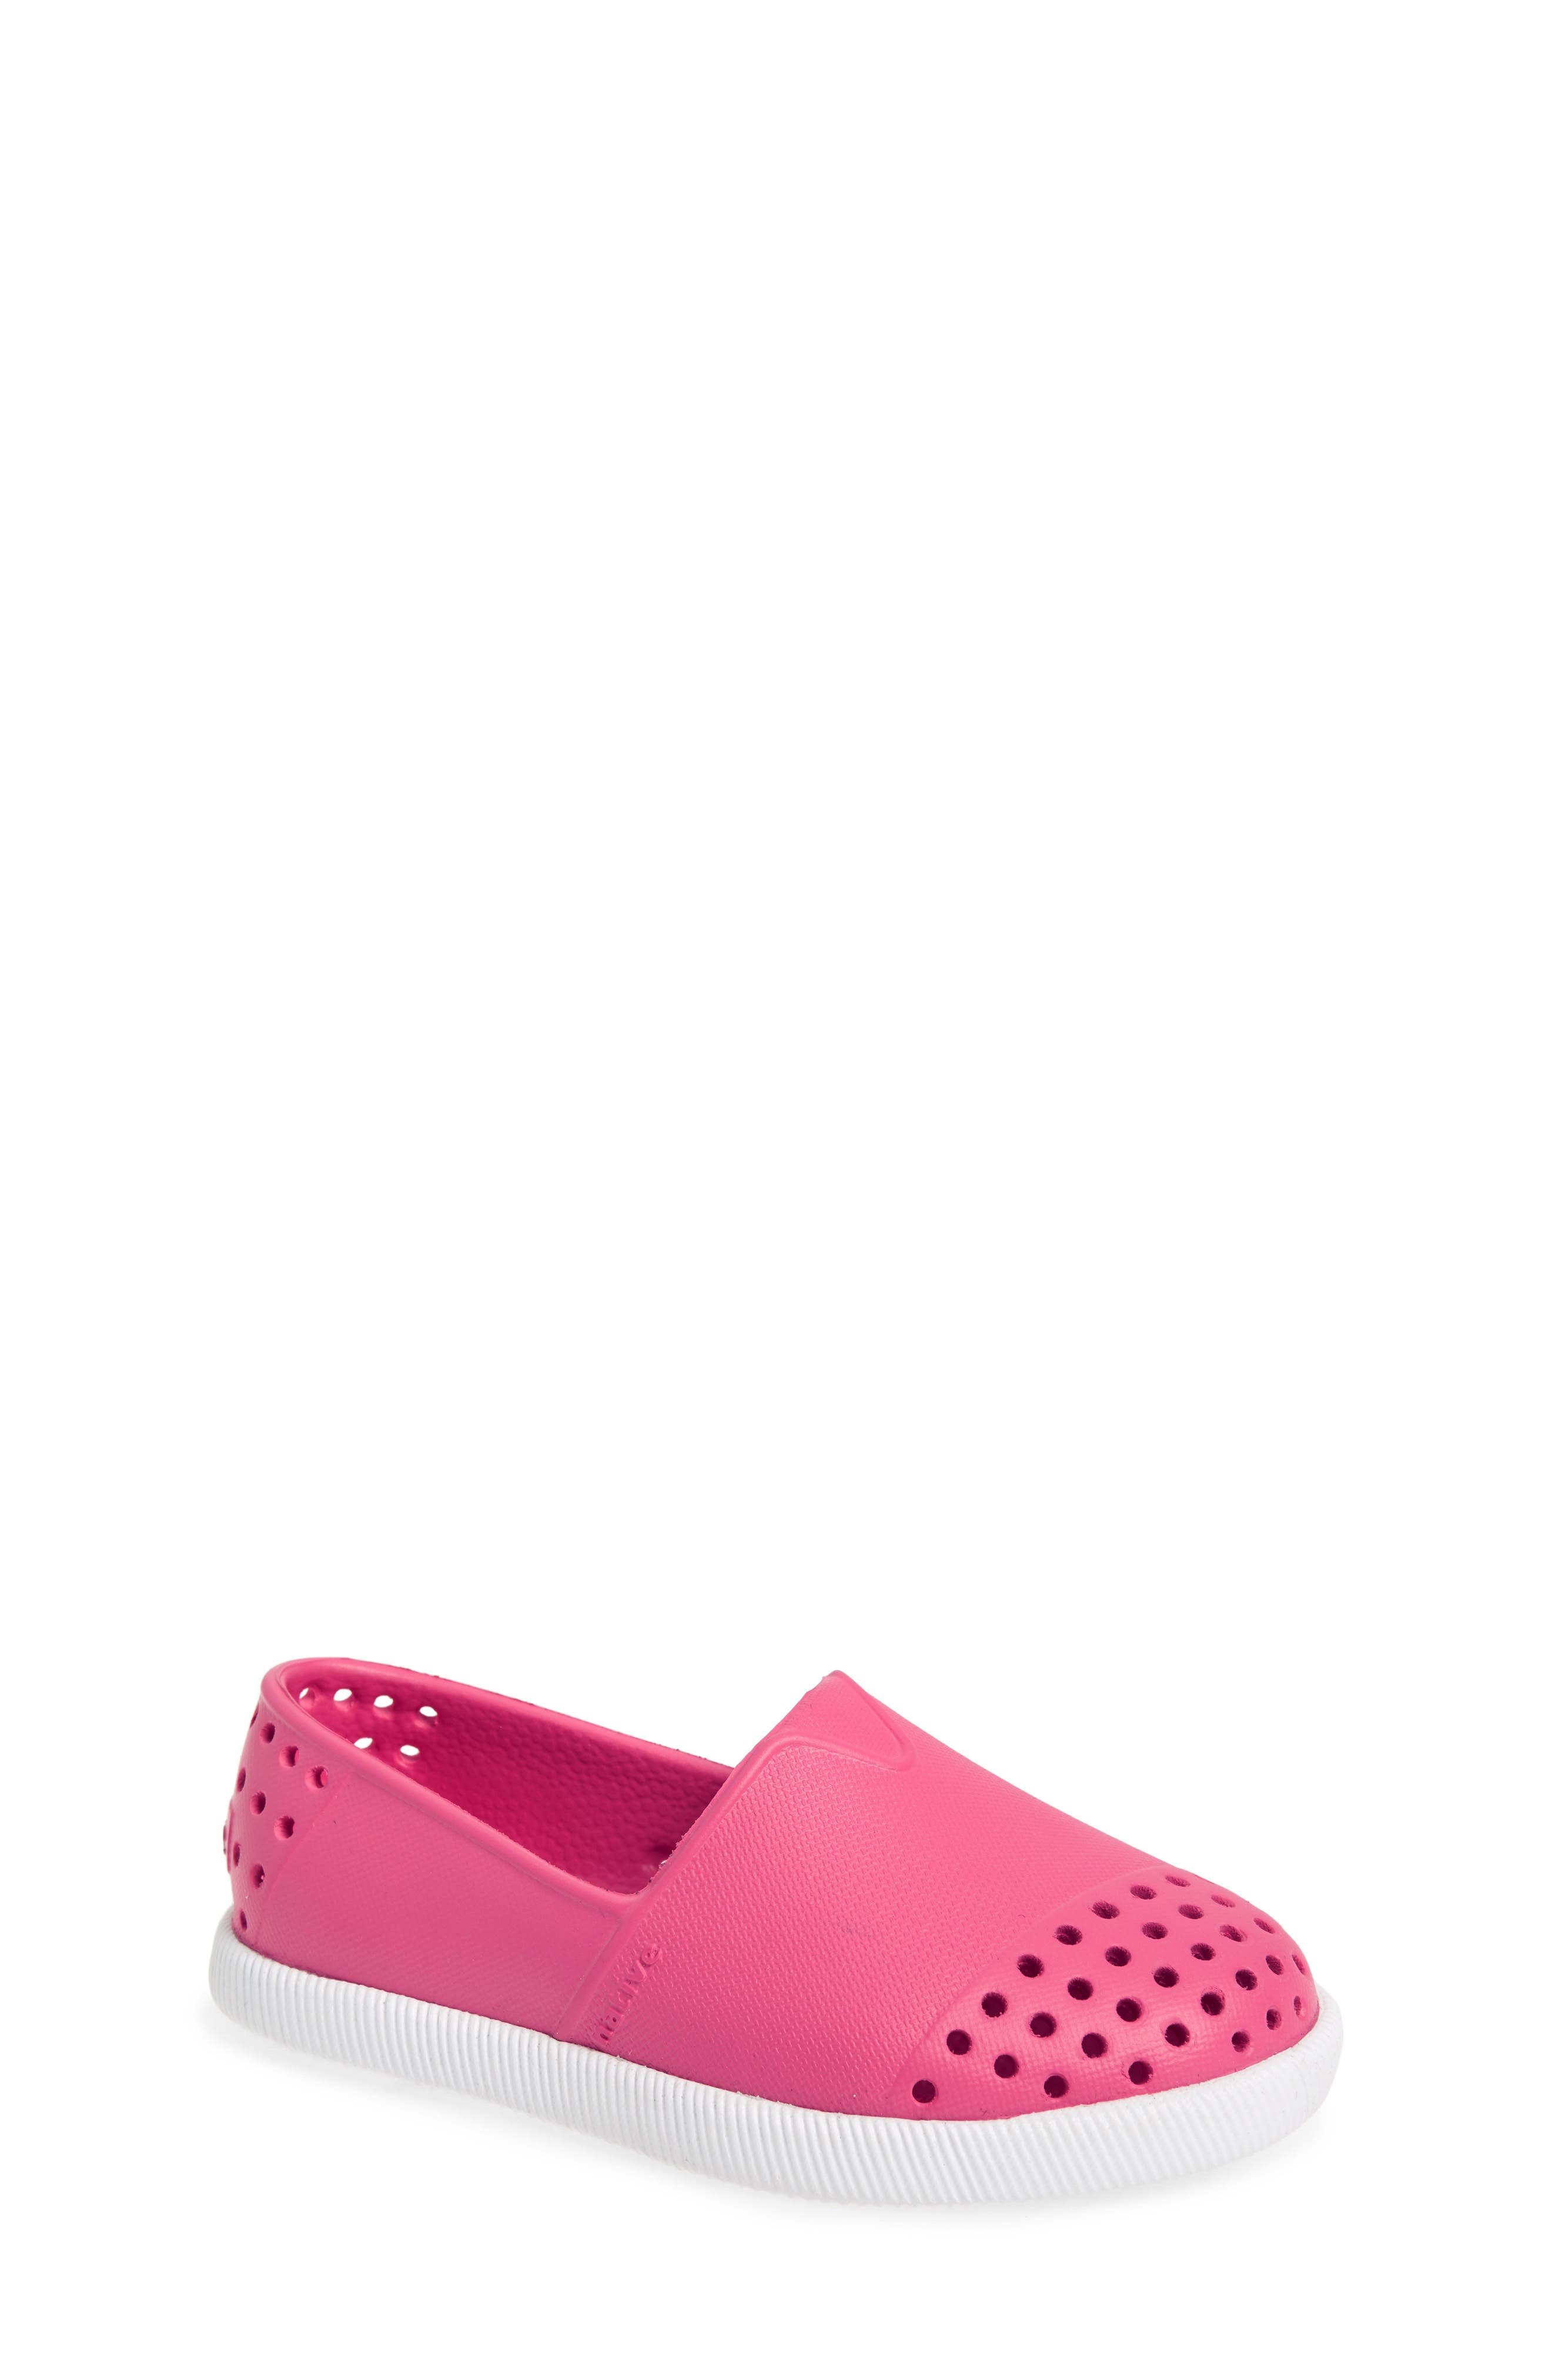 Verona Perforated Water Friendly Slip-On,                             Main thumbnail 1, color,                             Hollywood Pink/ Shell White